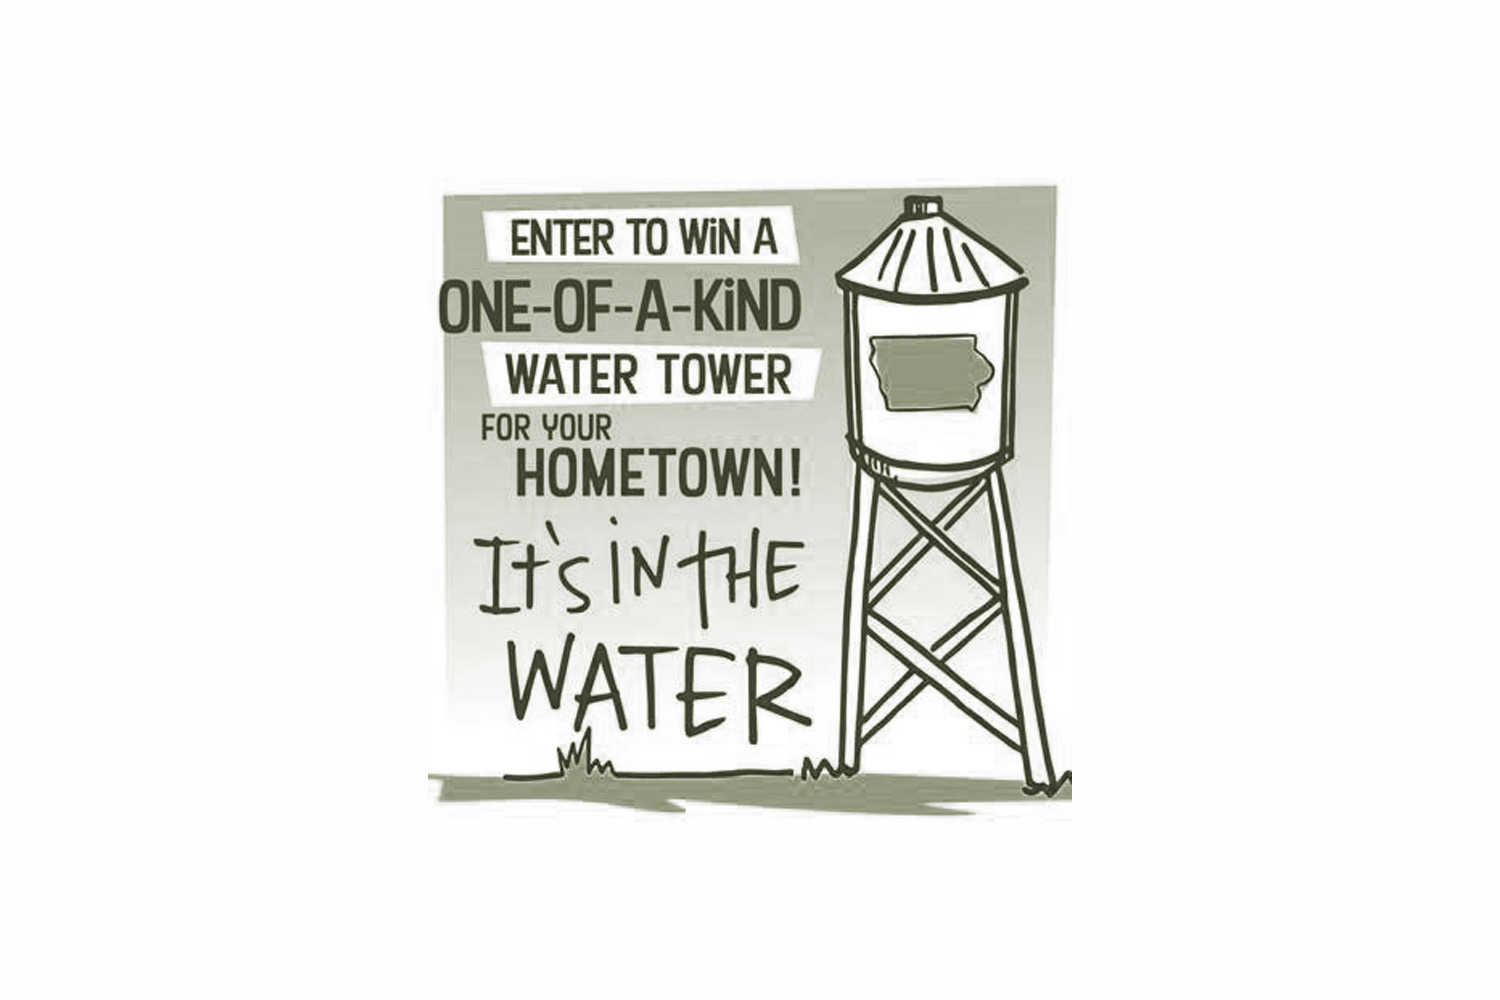 A monochromatic drawing of an advertisement for a water tower design contest.